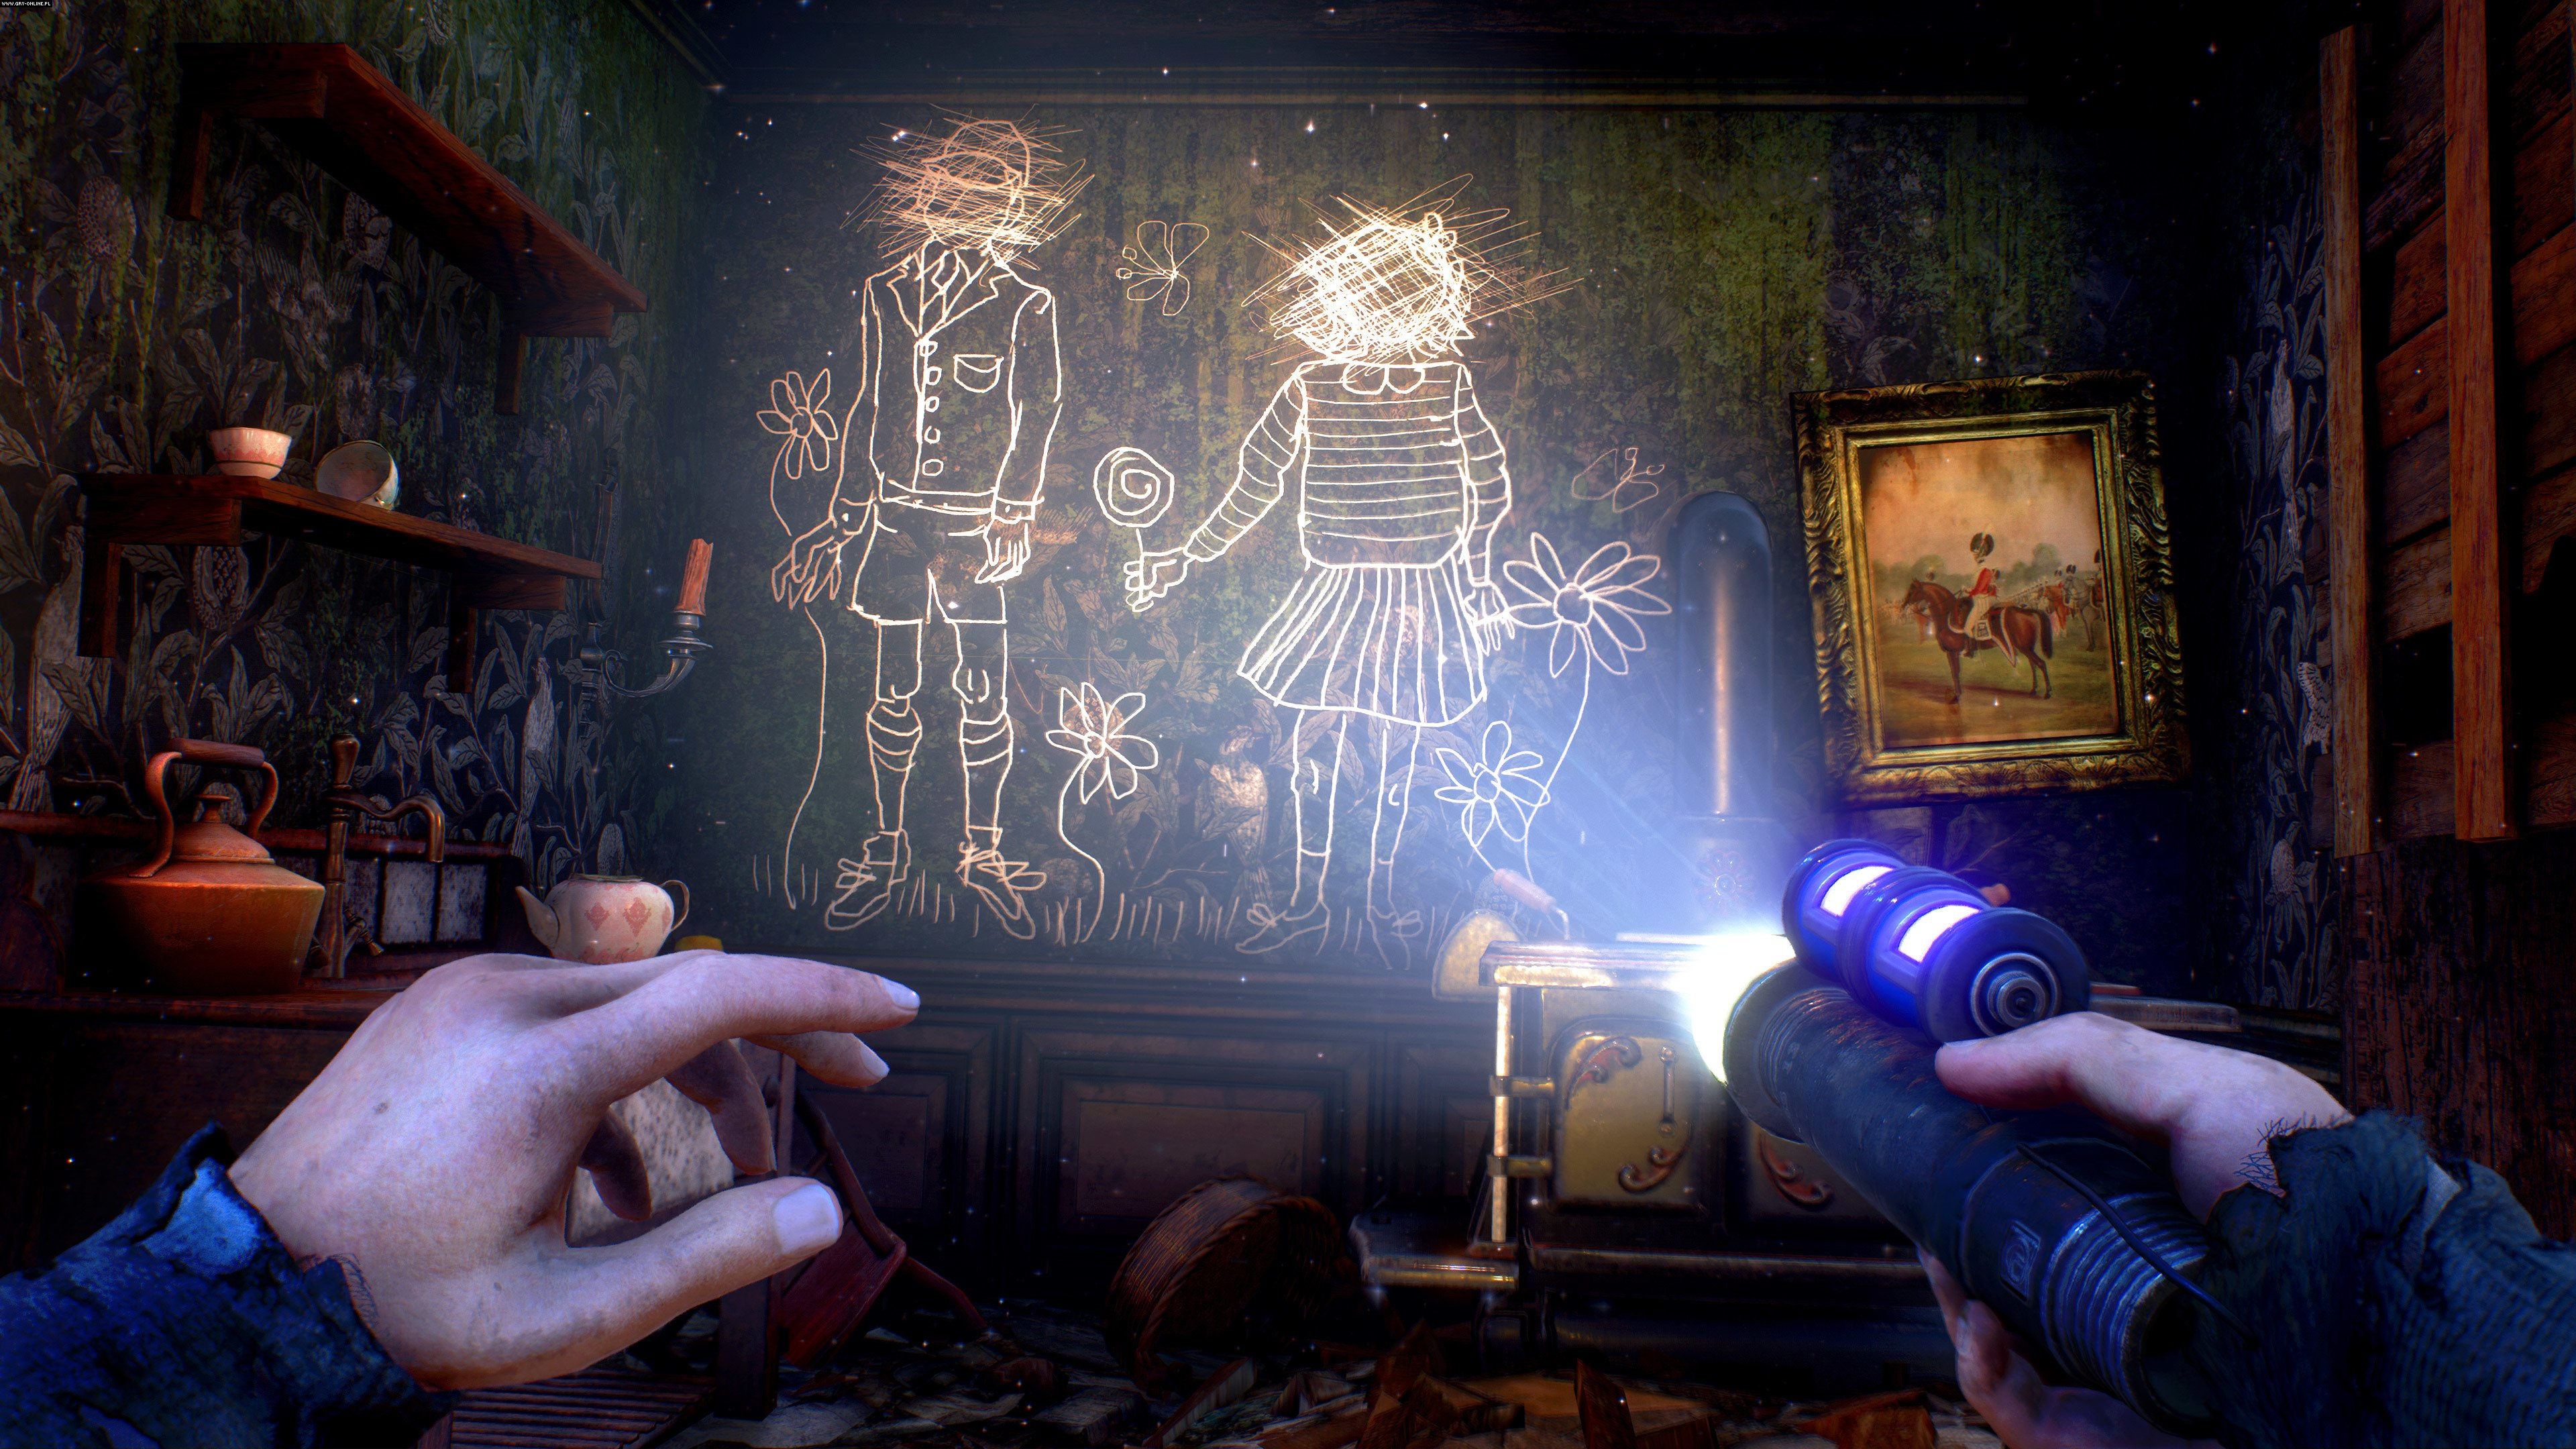 We Happy Few PC, PS4, XONE Gry Screen 9/40, Compulsion Games, Gearbox Publishing